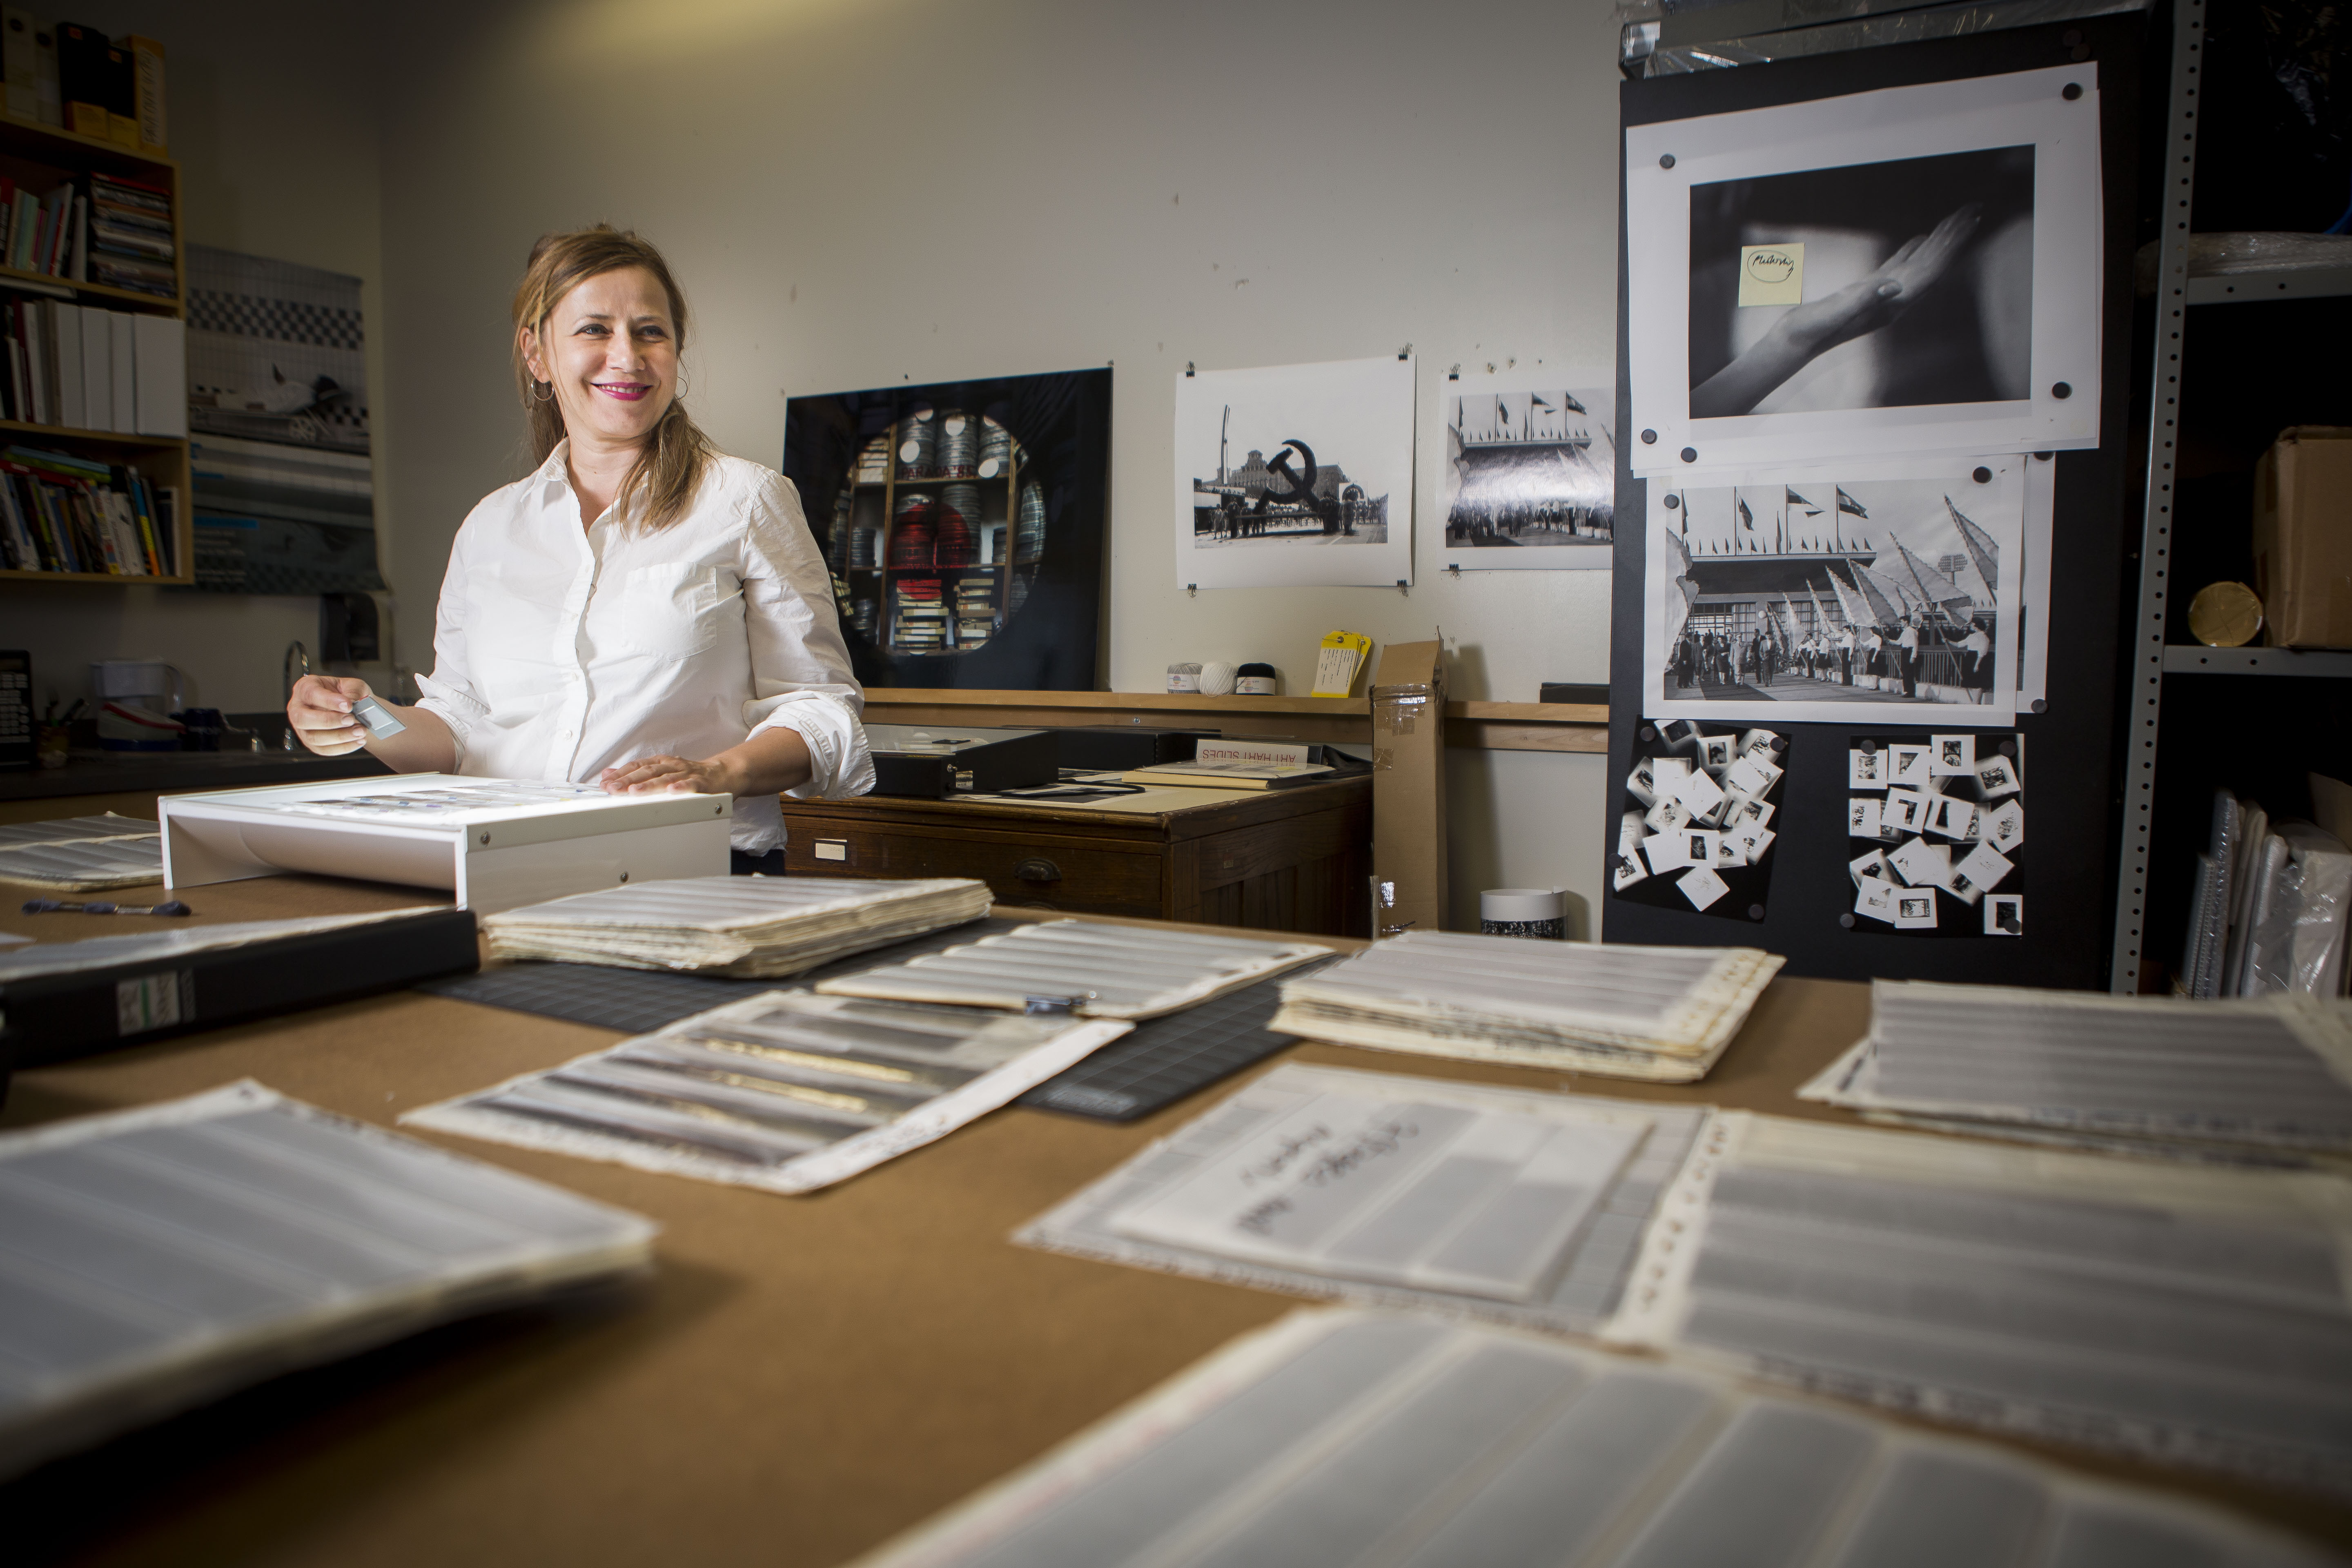 Vesna Pavlović standing at table surrounded by photos and documents